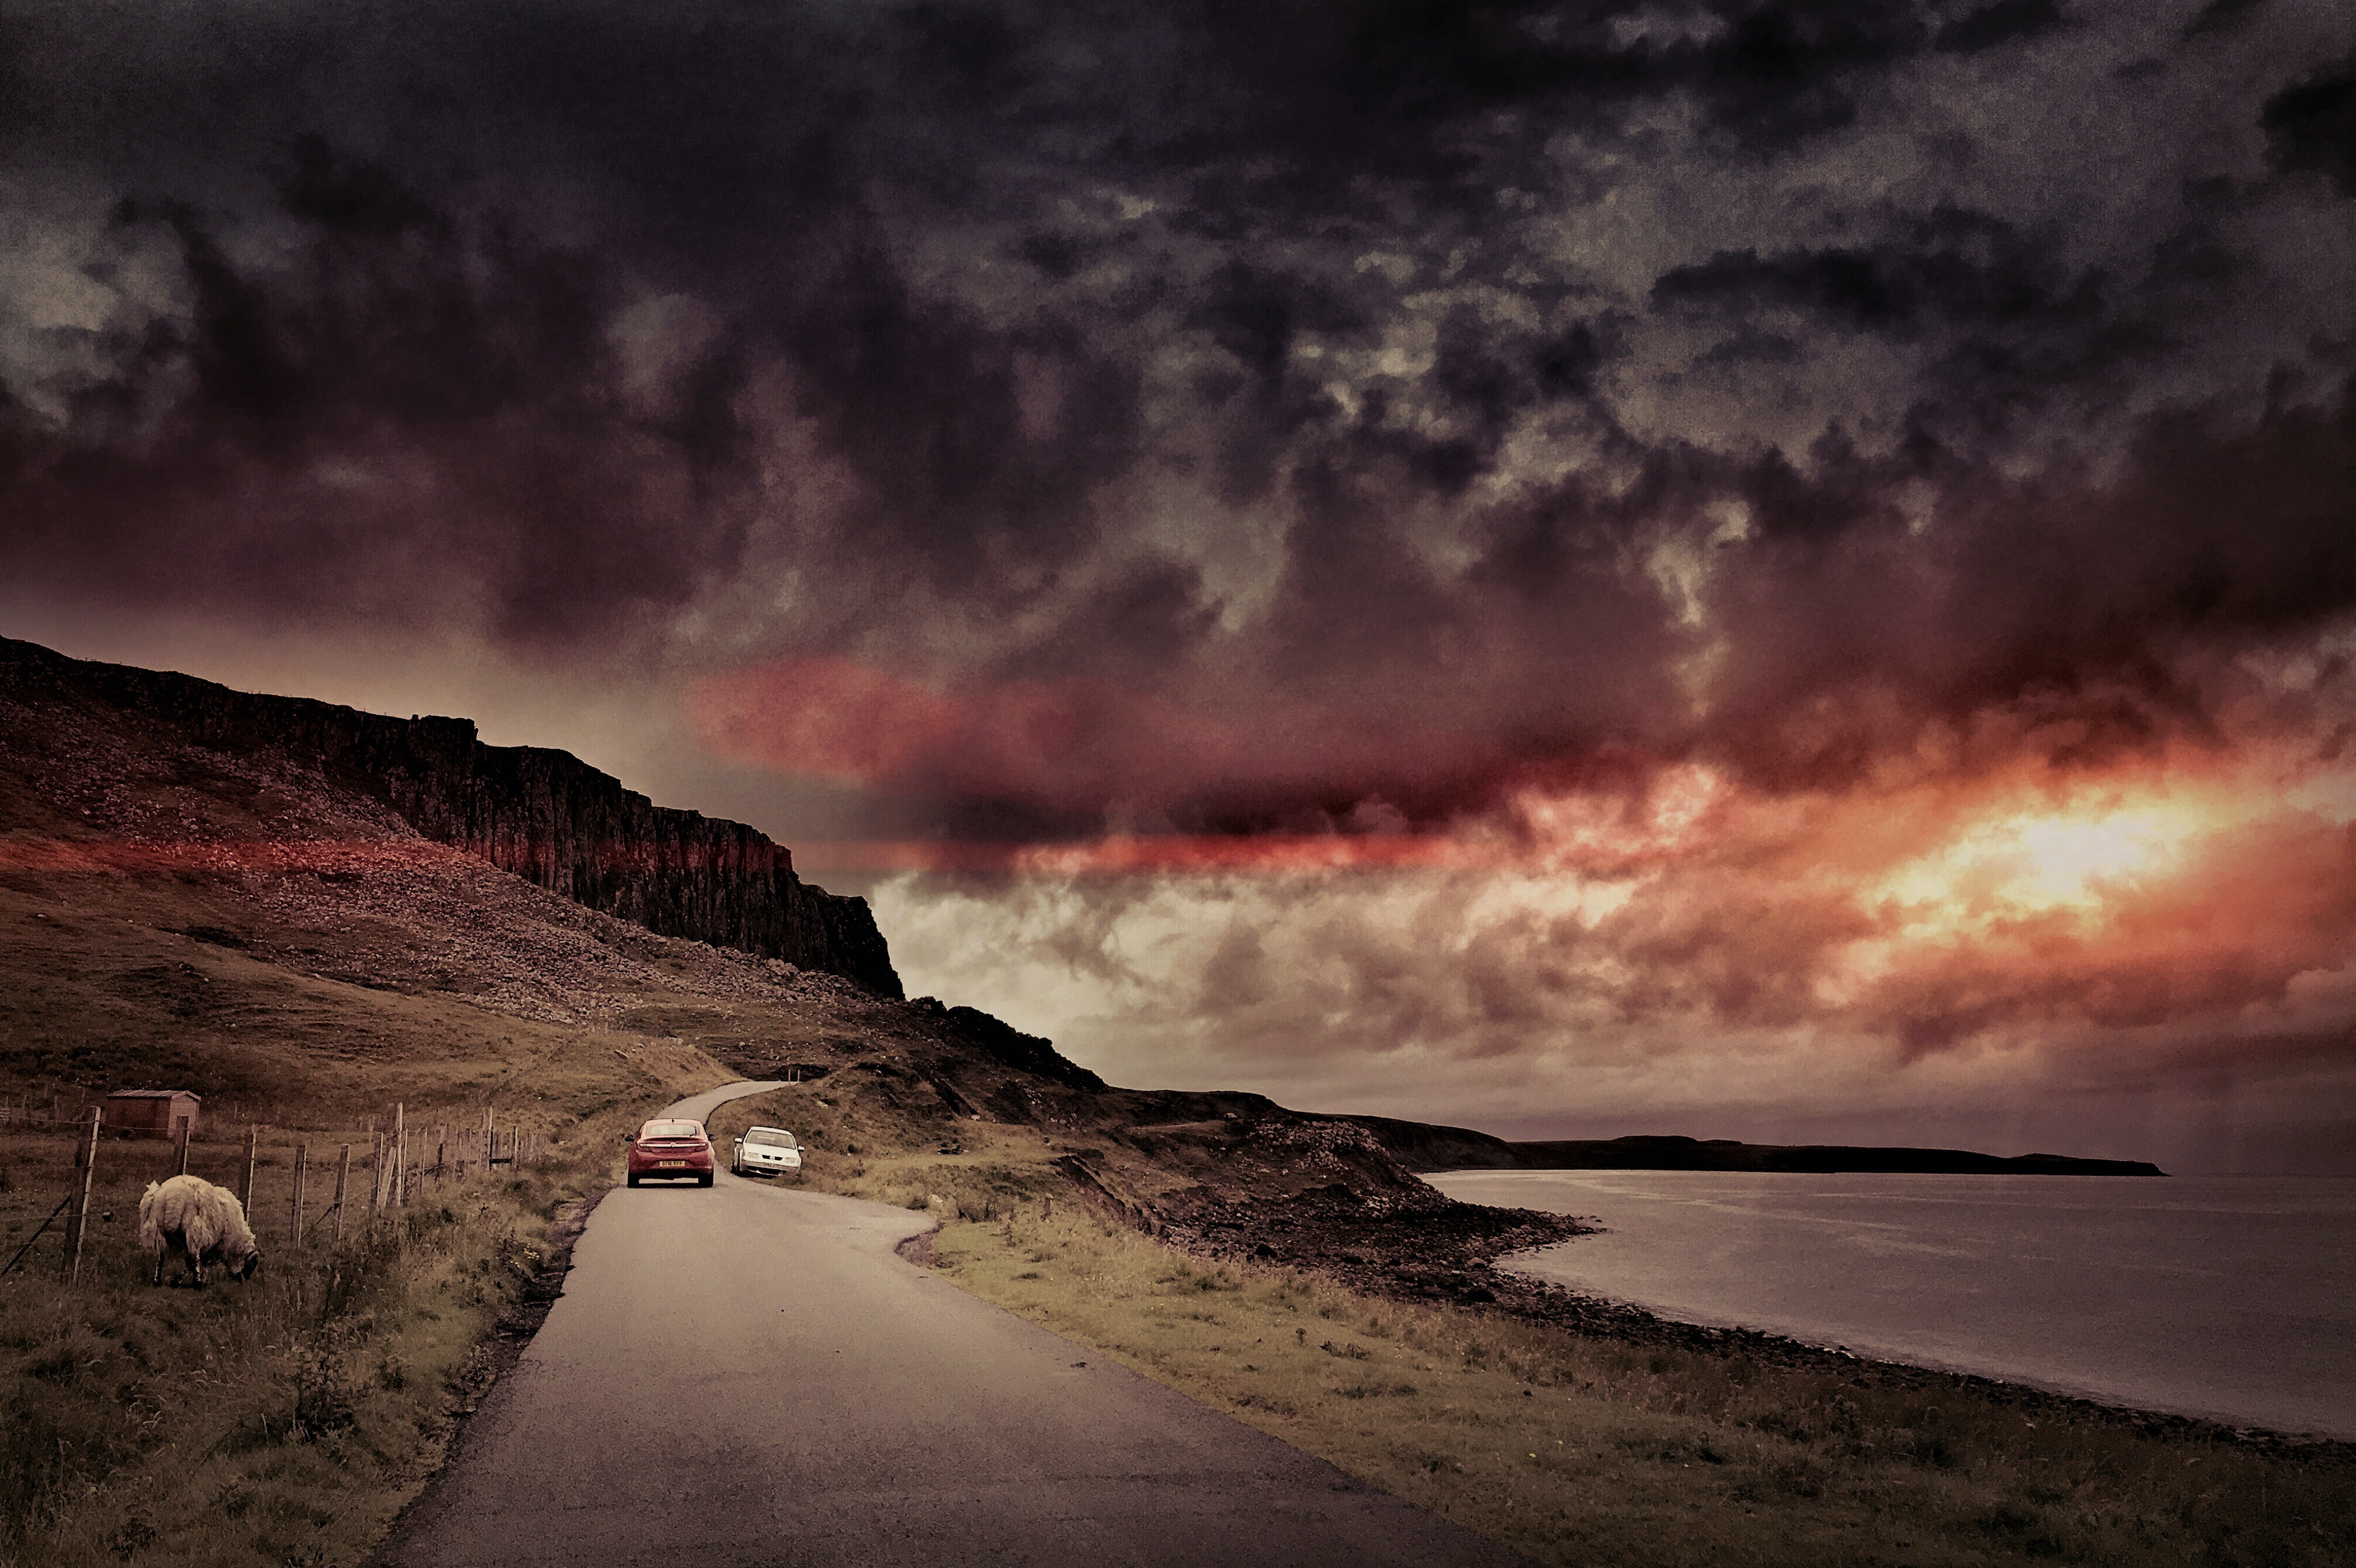 Coastal road at sunset dusk with moody sky in Kyle of Lockalsh